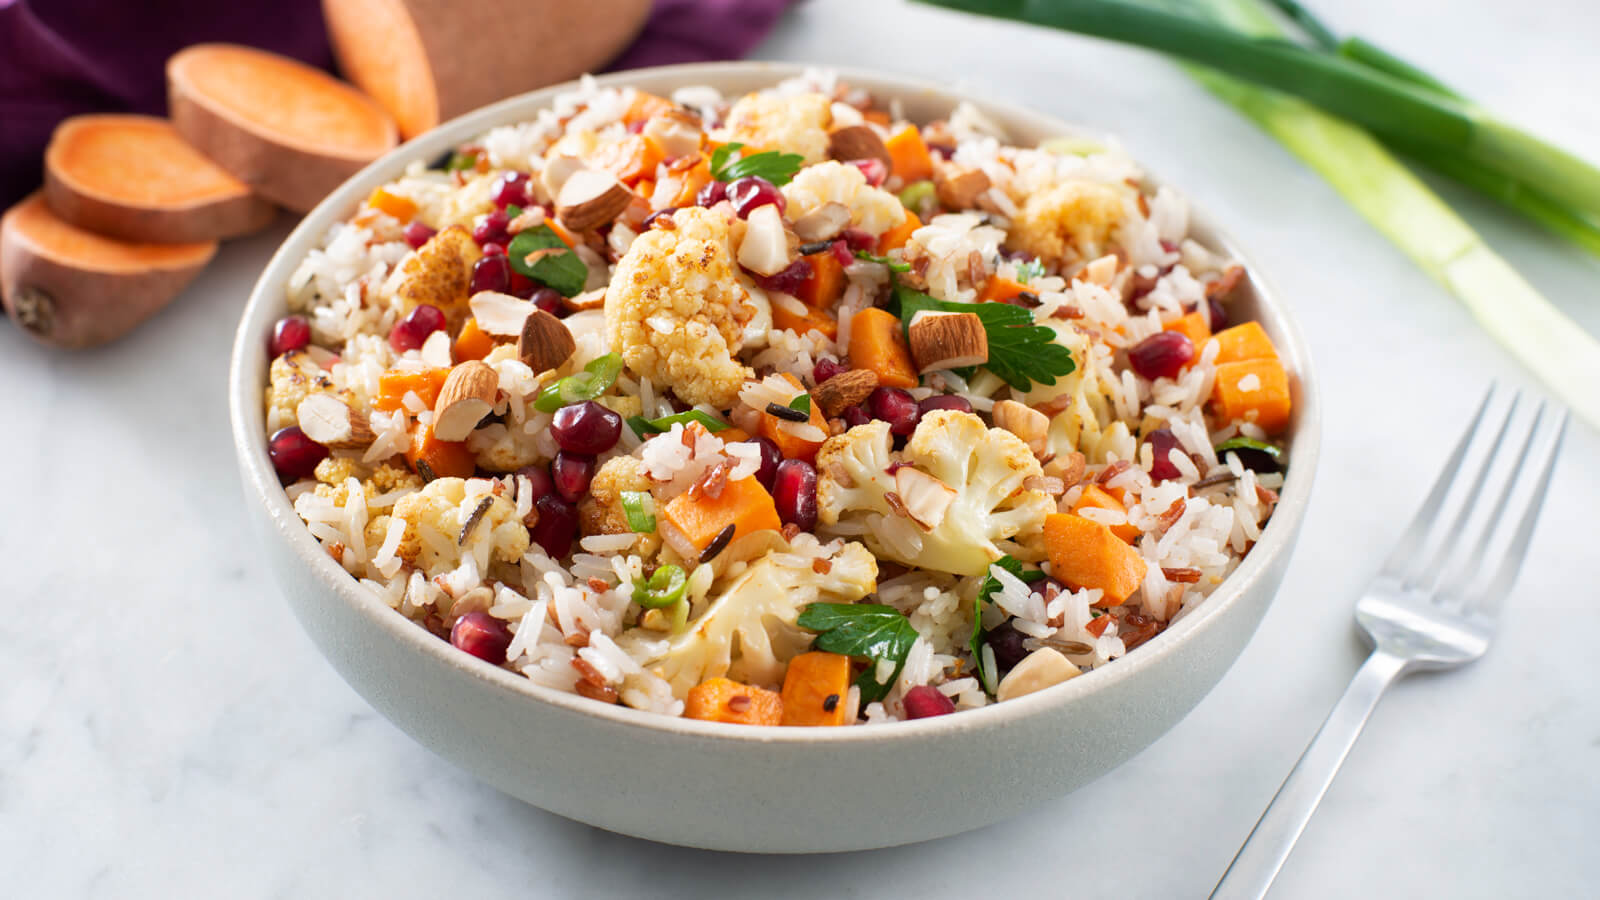 Middle Eastern Wild Rice Salad with Roasted Sweet Potato and Cauliflower